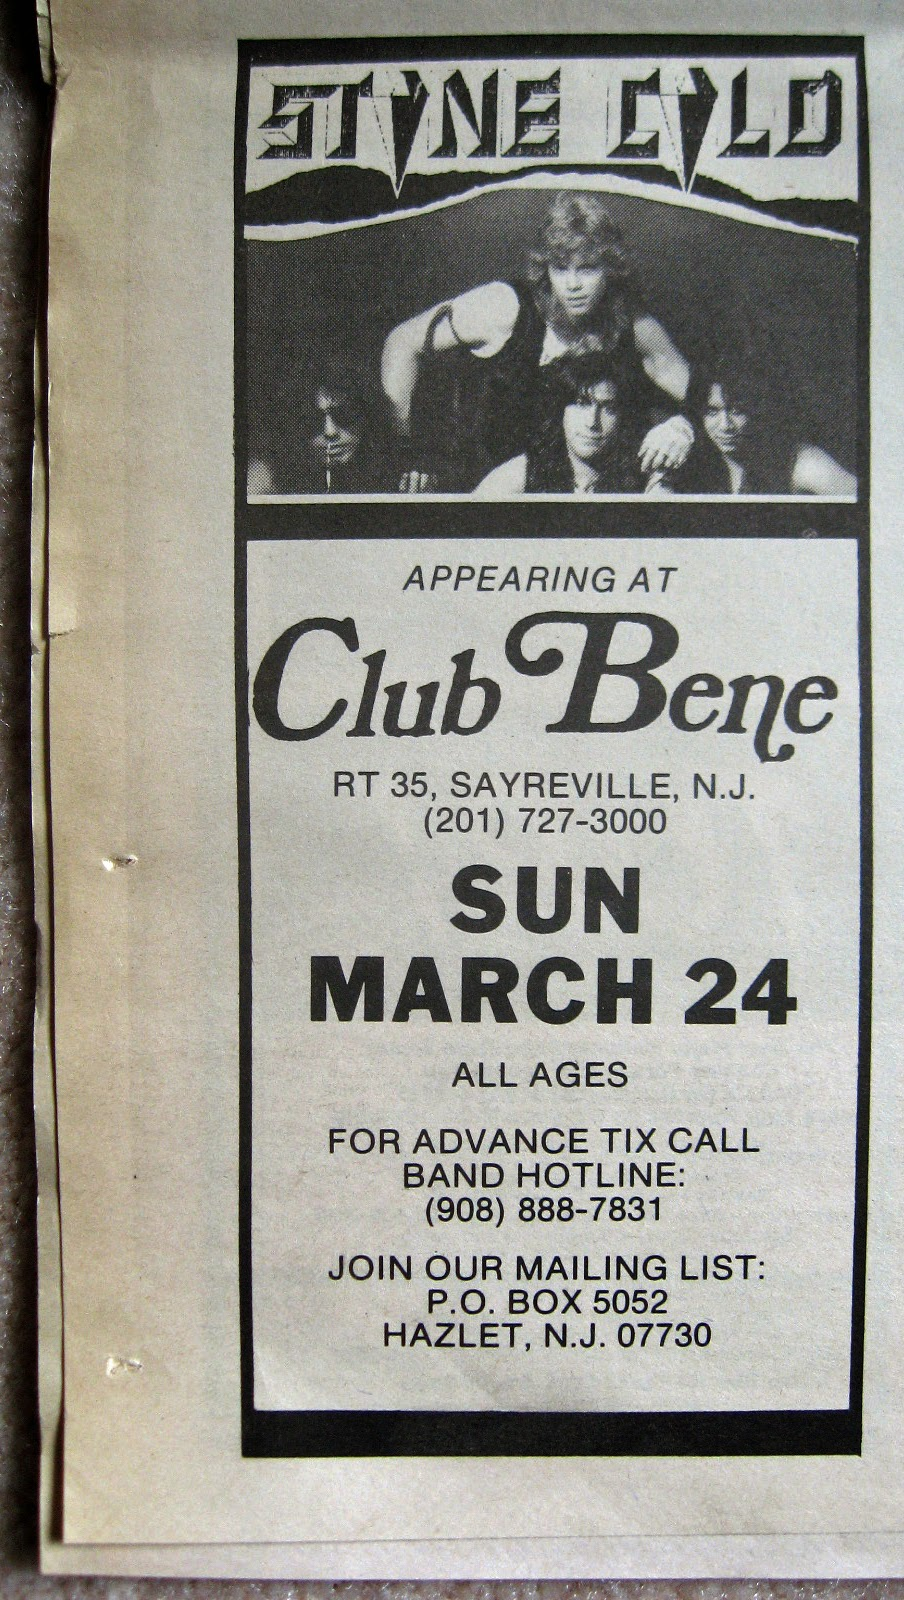 Stone Cold at Club Bene 1991